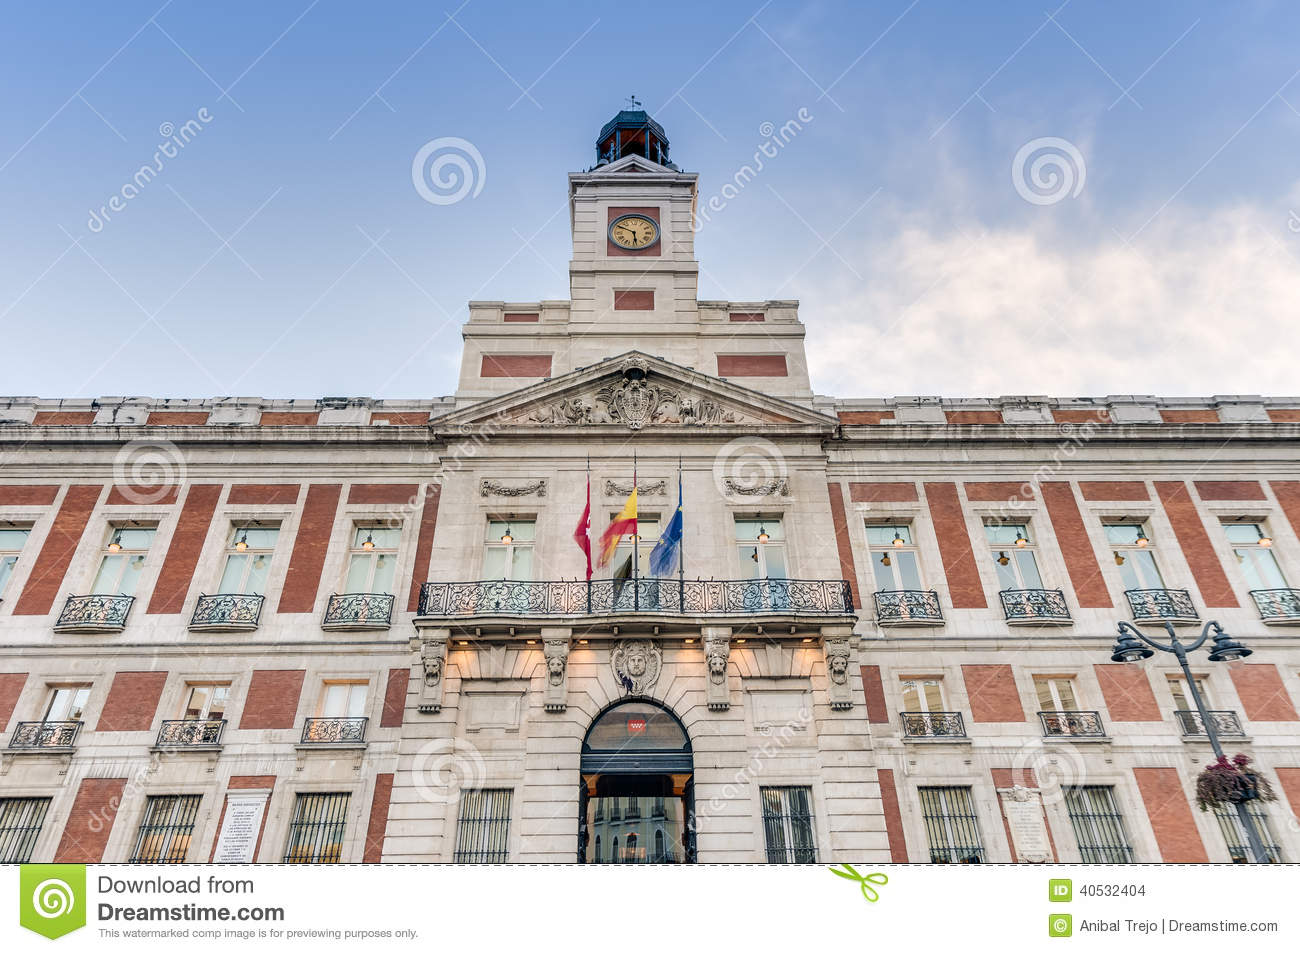 Real casa de correos building in madrid spain stock for Hospedaje puerta del sol